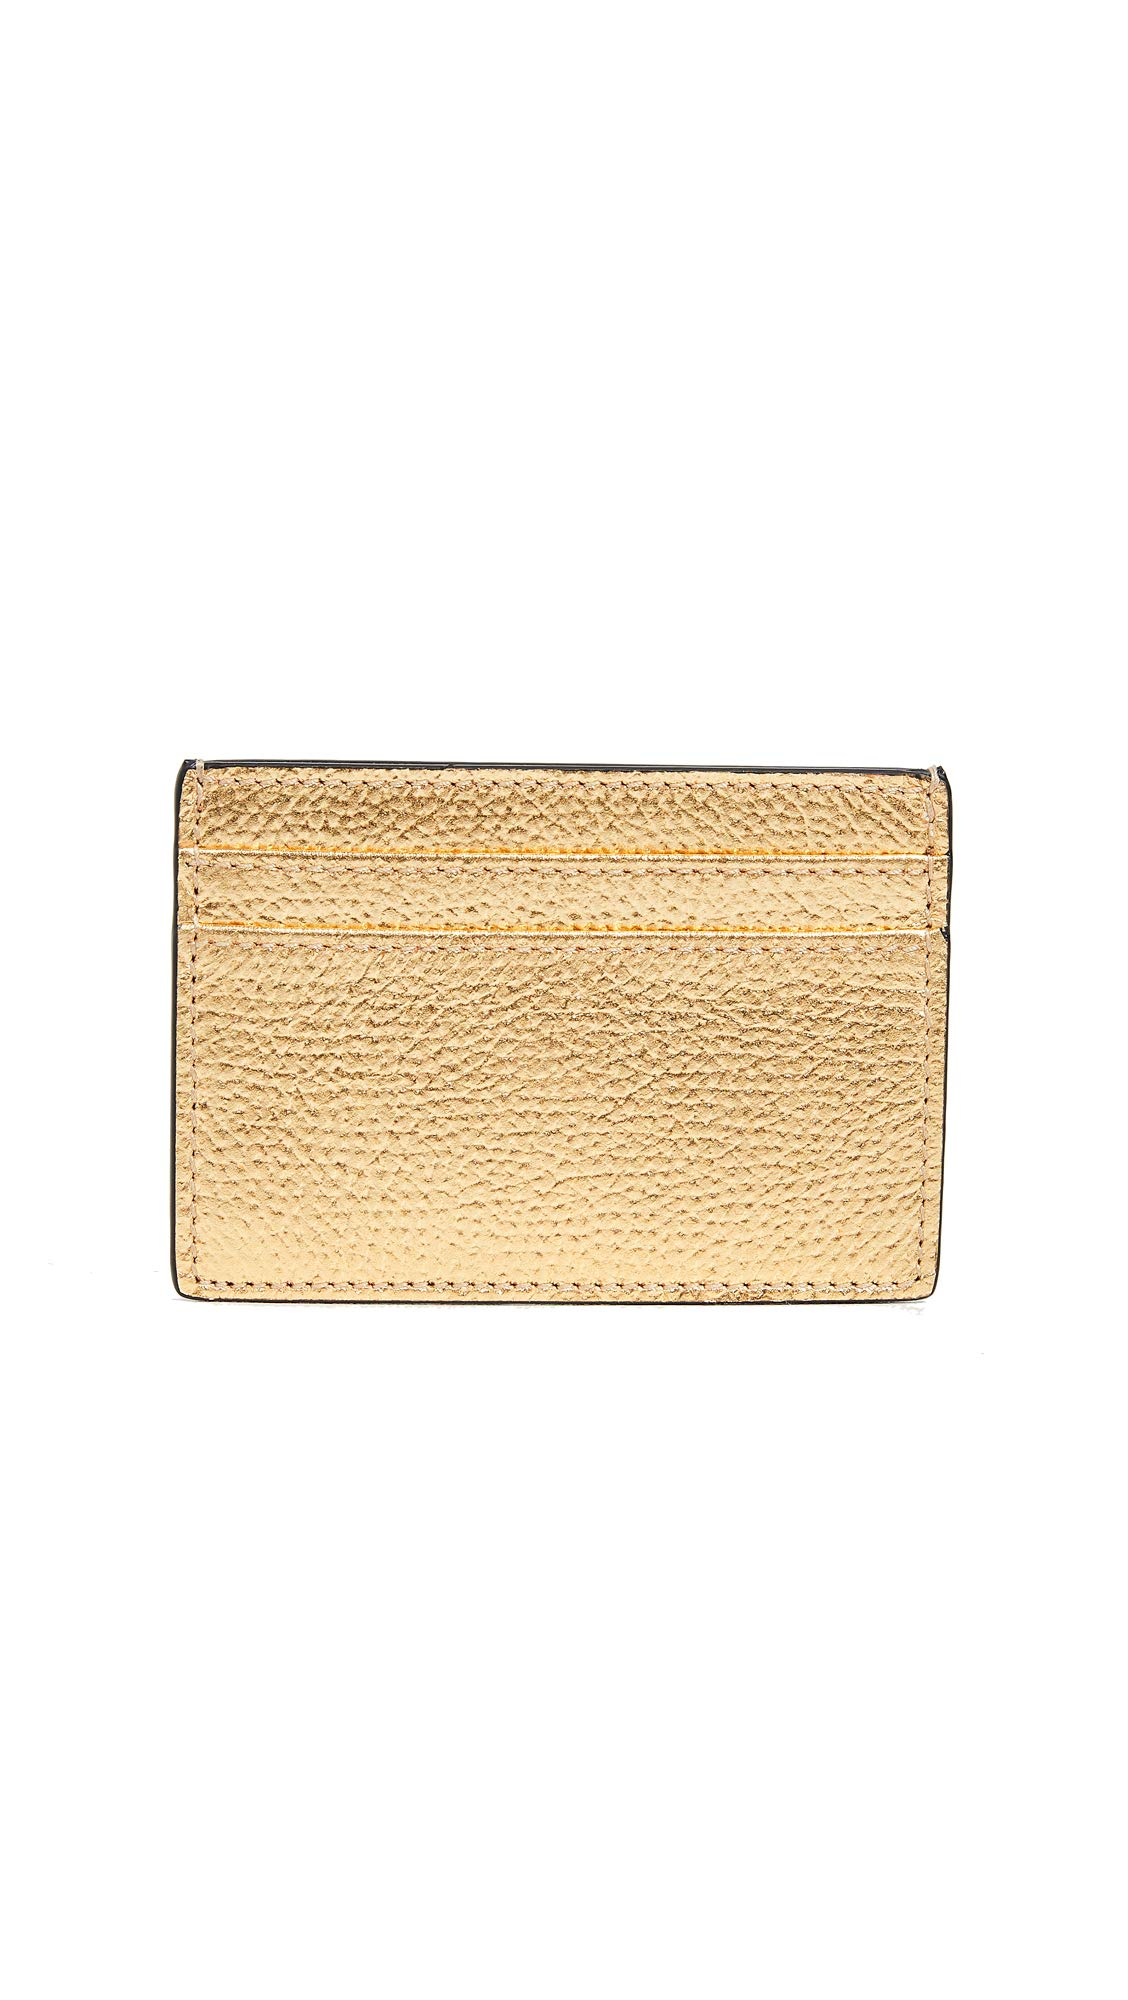 Smythson Women's Metallic Leather Flat Card Holder, Gold/Platinum, One Size